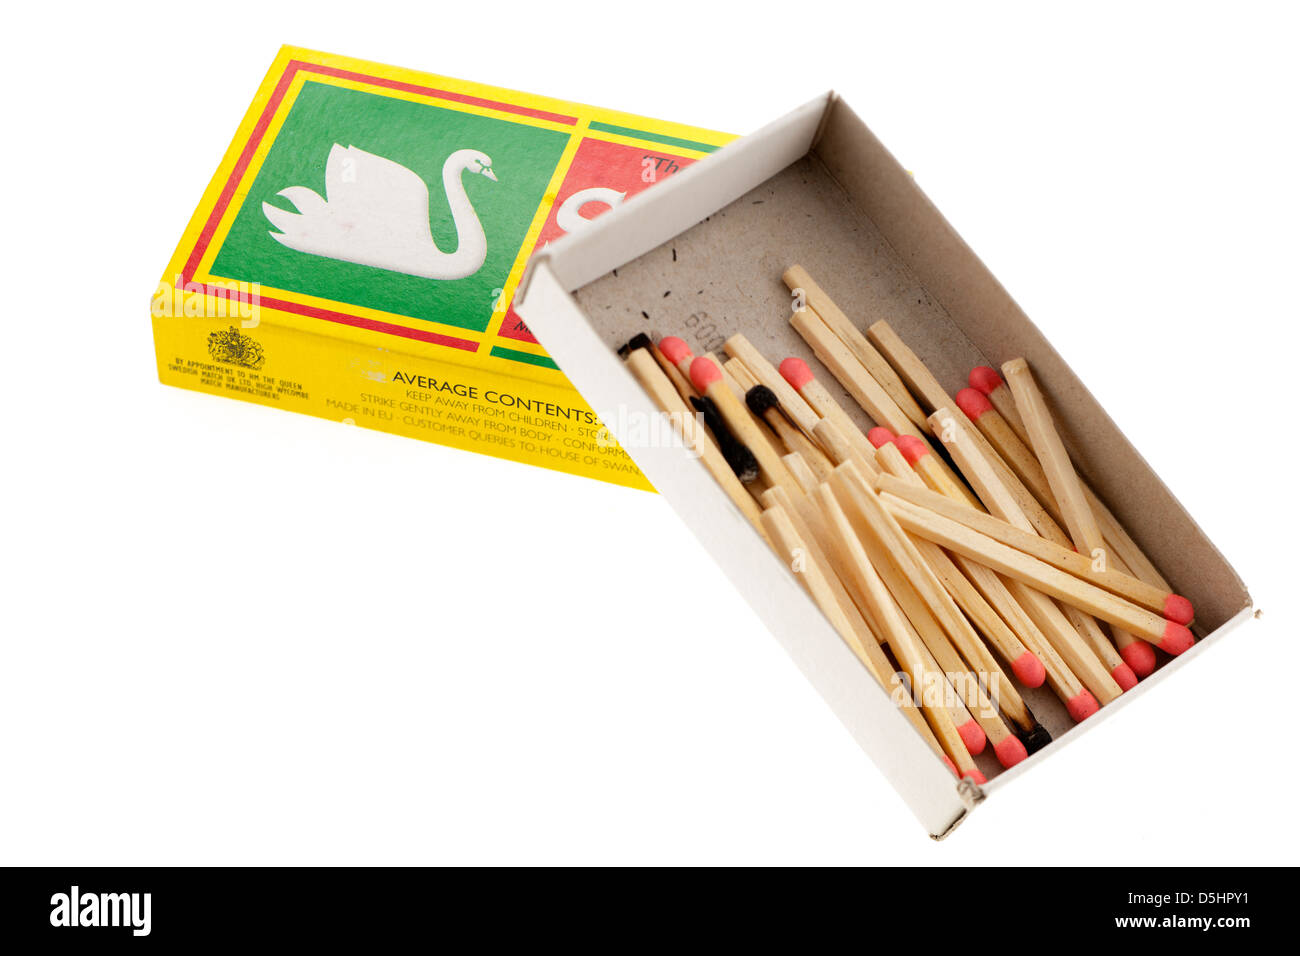 Box of used matches - Stock Image